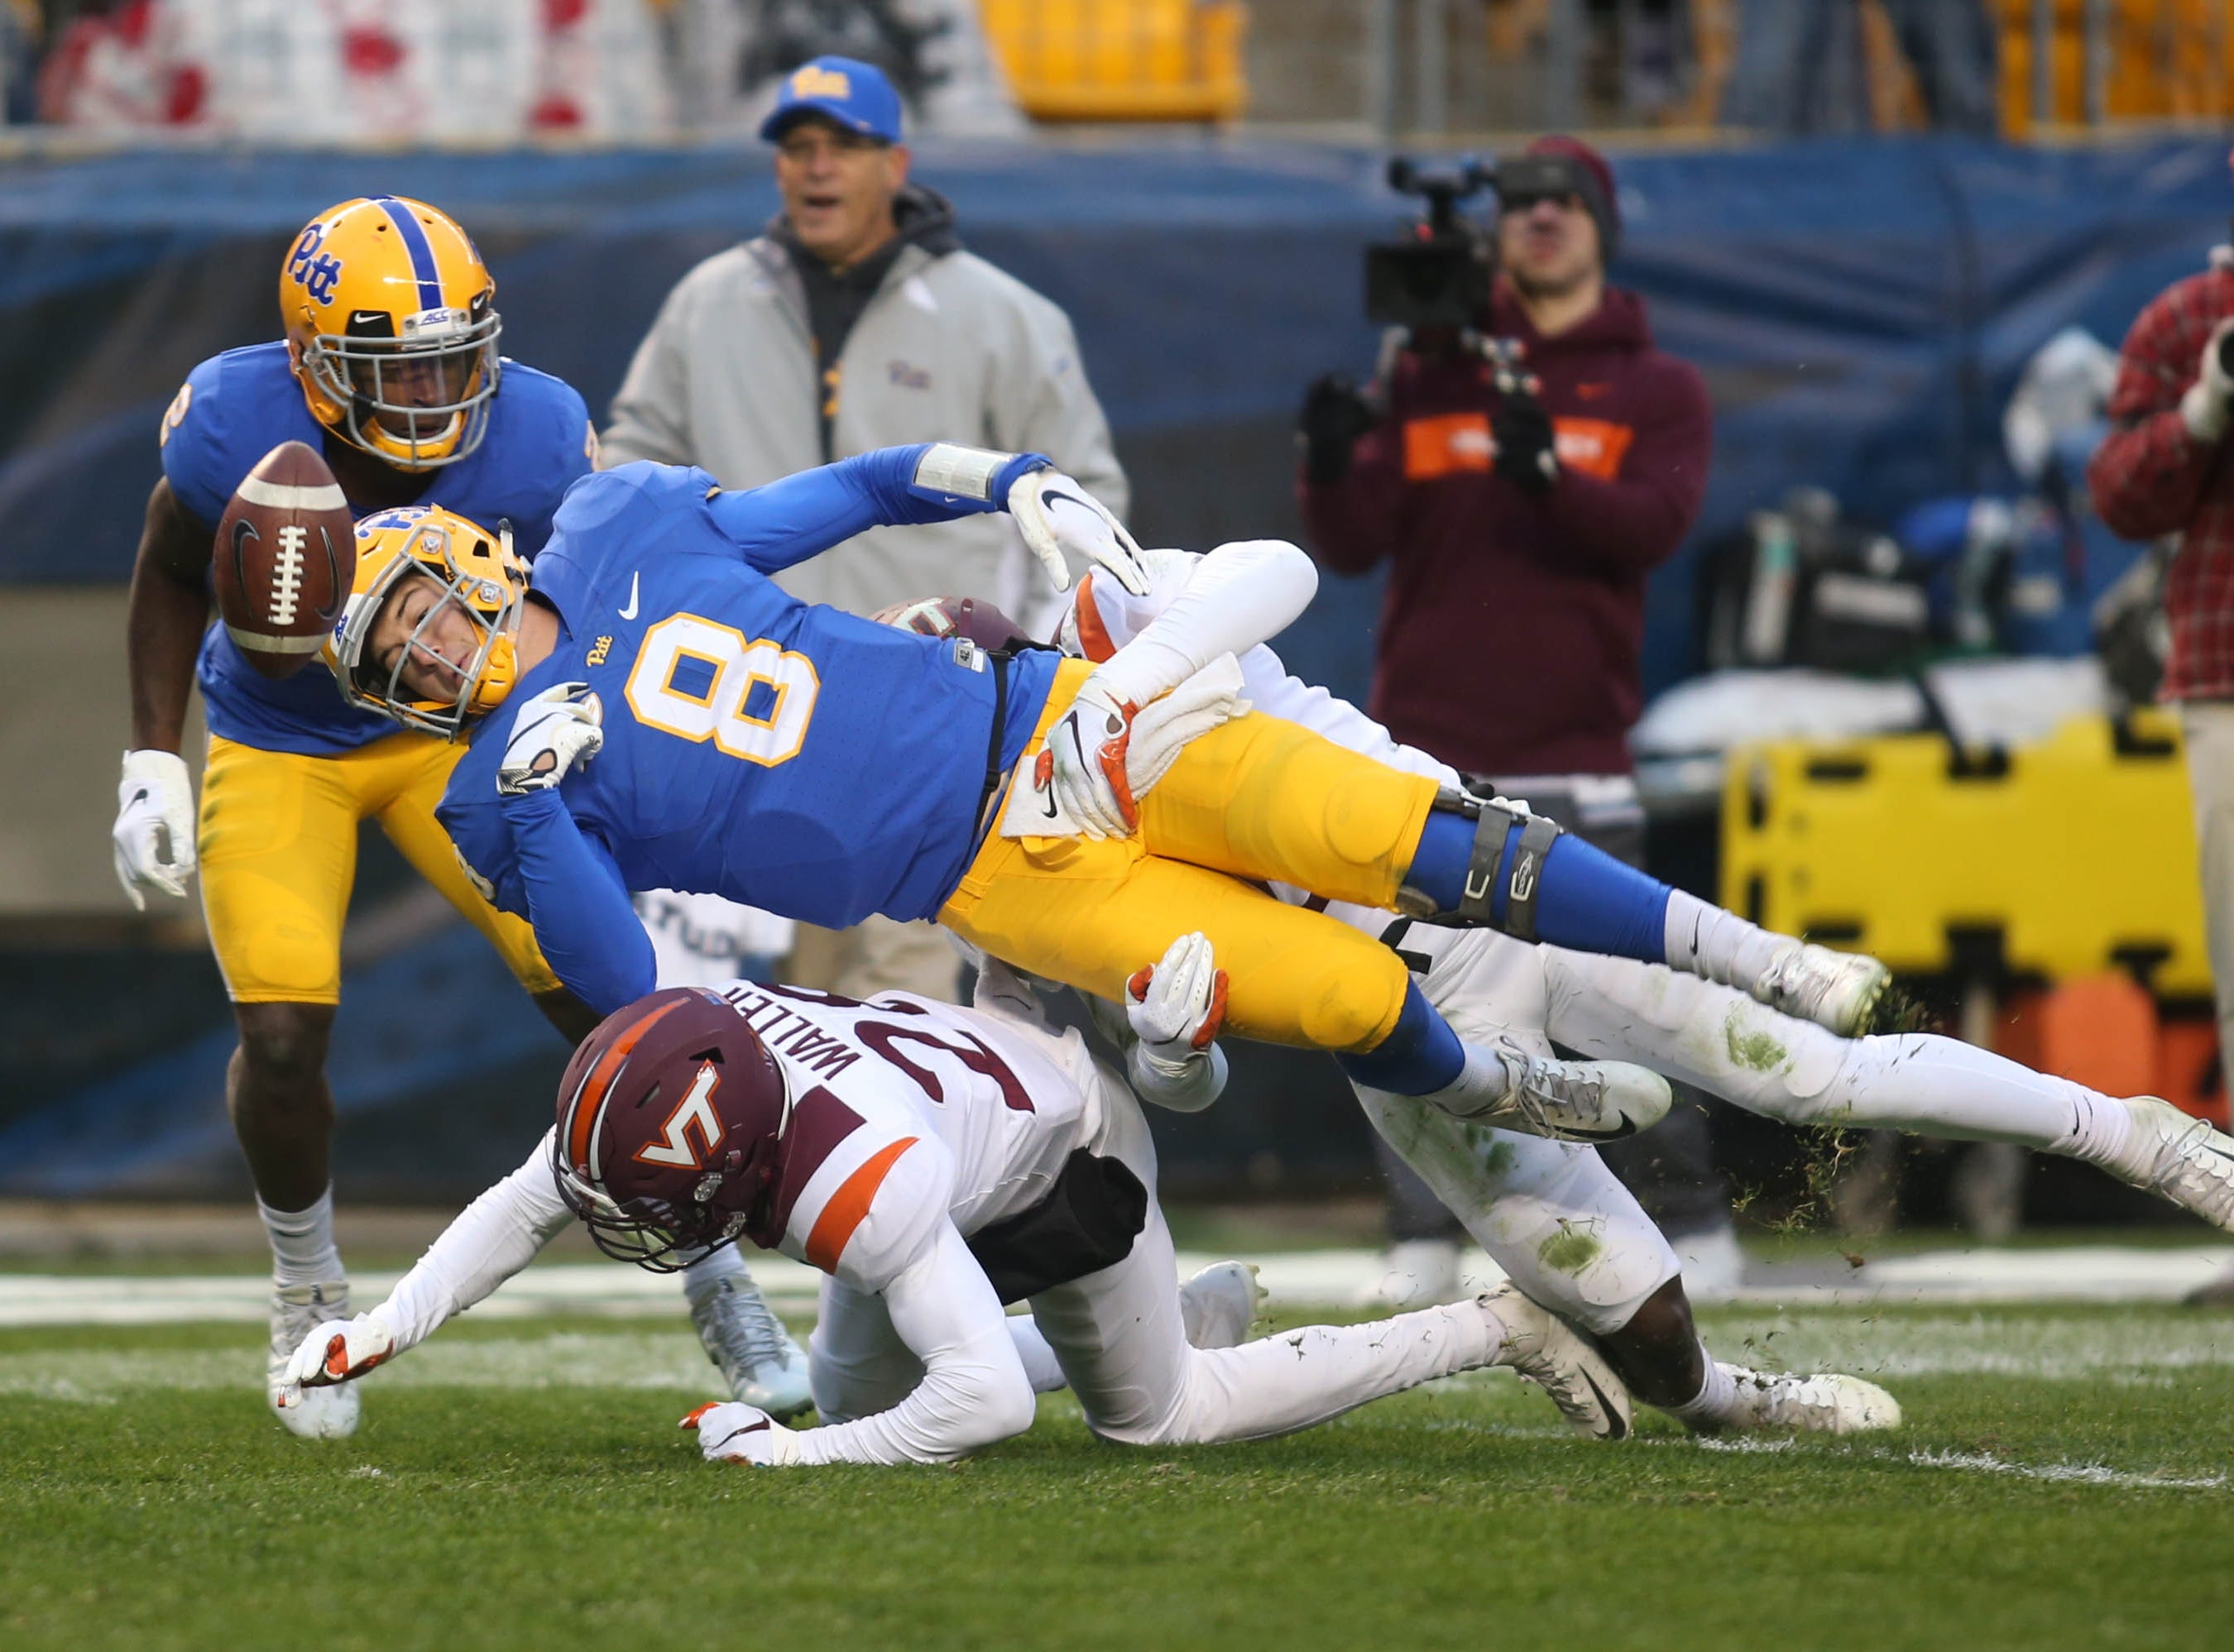 Virginia Tech Hokies defensive back Jermaine Waller (28) causes Pittsburgh Panthers quarterback Kenny Pickett (8) to fumble during the second quarter at Heinz Field.